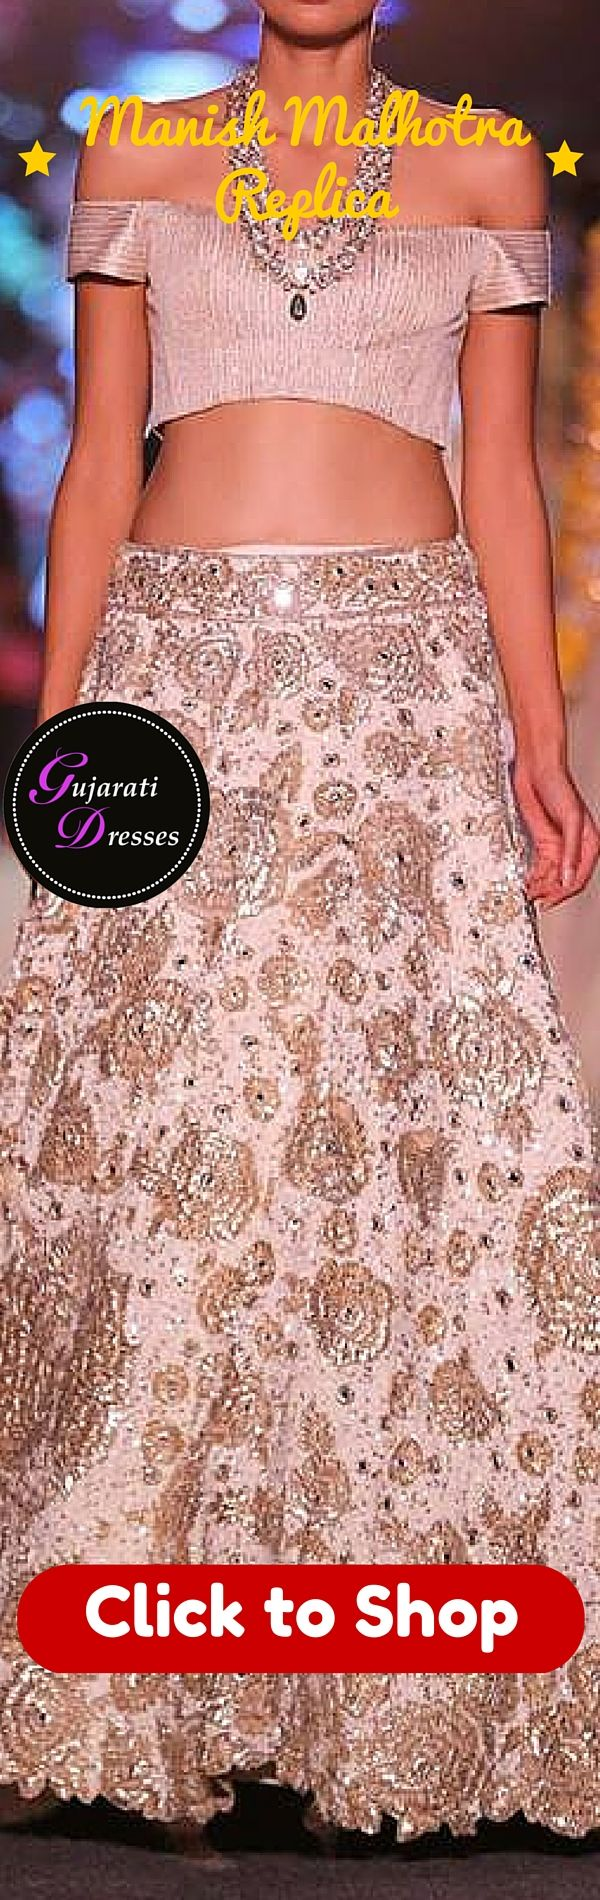 Buy Manish Malhotra replica of this cream lehenga choli showcased at lakme fashion week 2015 here: http://www.gujaratidresses.com/manish-malhotra-lehenga-choli-2015/ at 2500$ USD #lehenga #lehengacholi #bridal #bridaldress #indianbride #indianbridal #indianfashion #indiandesigner #designerwear #indianwear #indianclothing #indianoutfit #manishmalhotra #lakmefashionweek #lfw #lengha #sari #saree #bridetobe #indianwedding #weddingdress